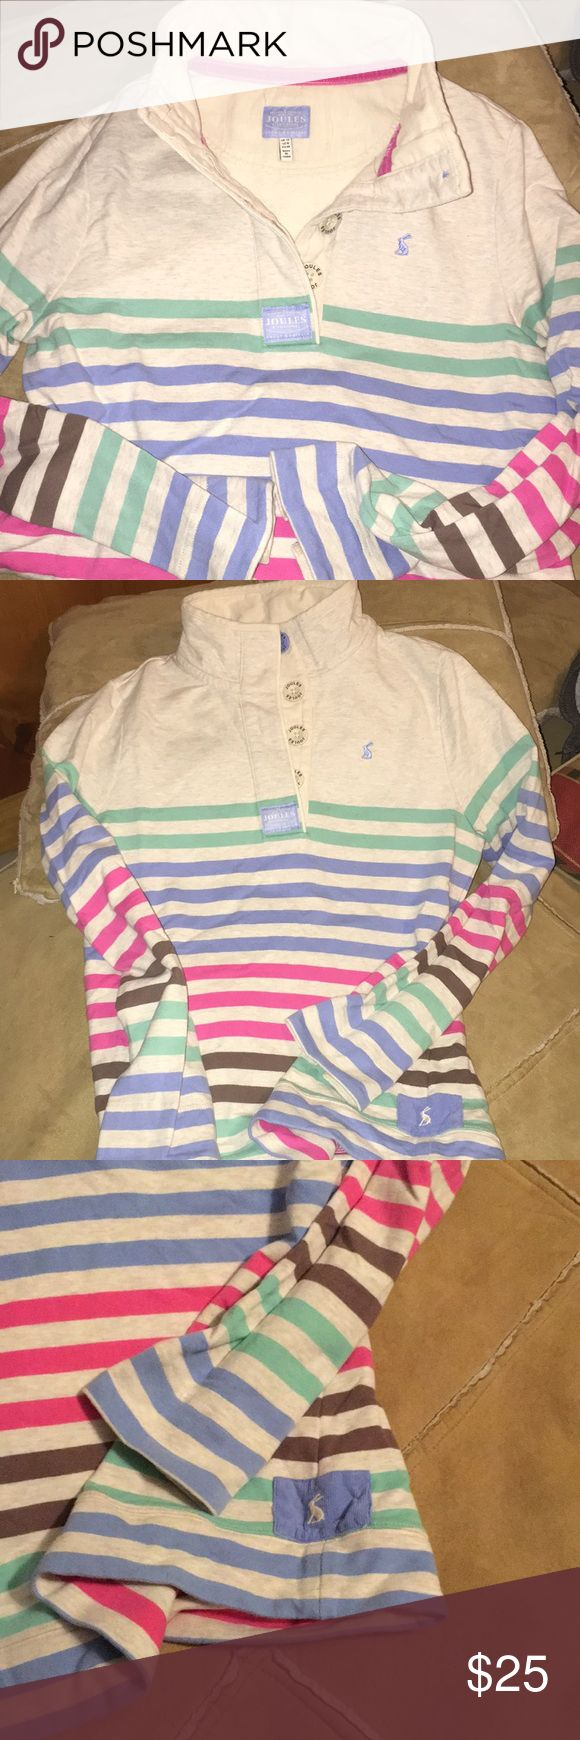 Joules pullover woman's size 8 Pastel striped pullover in great used condition, worn only a few times Joules Tops